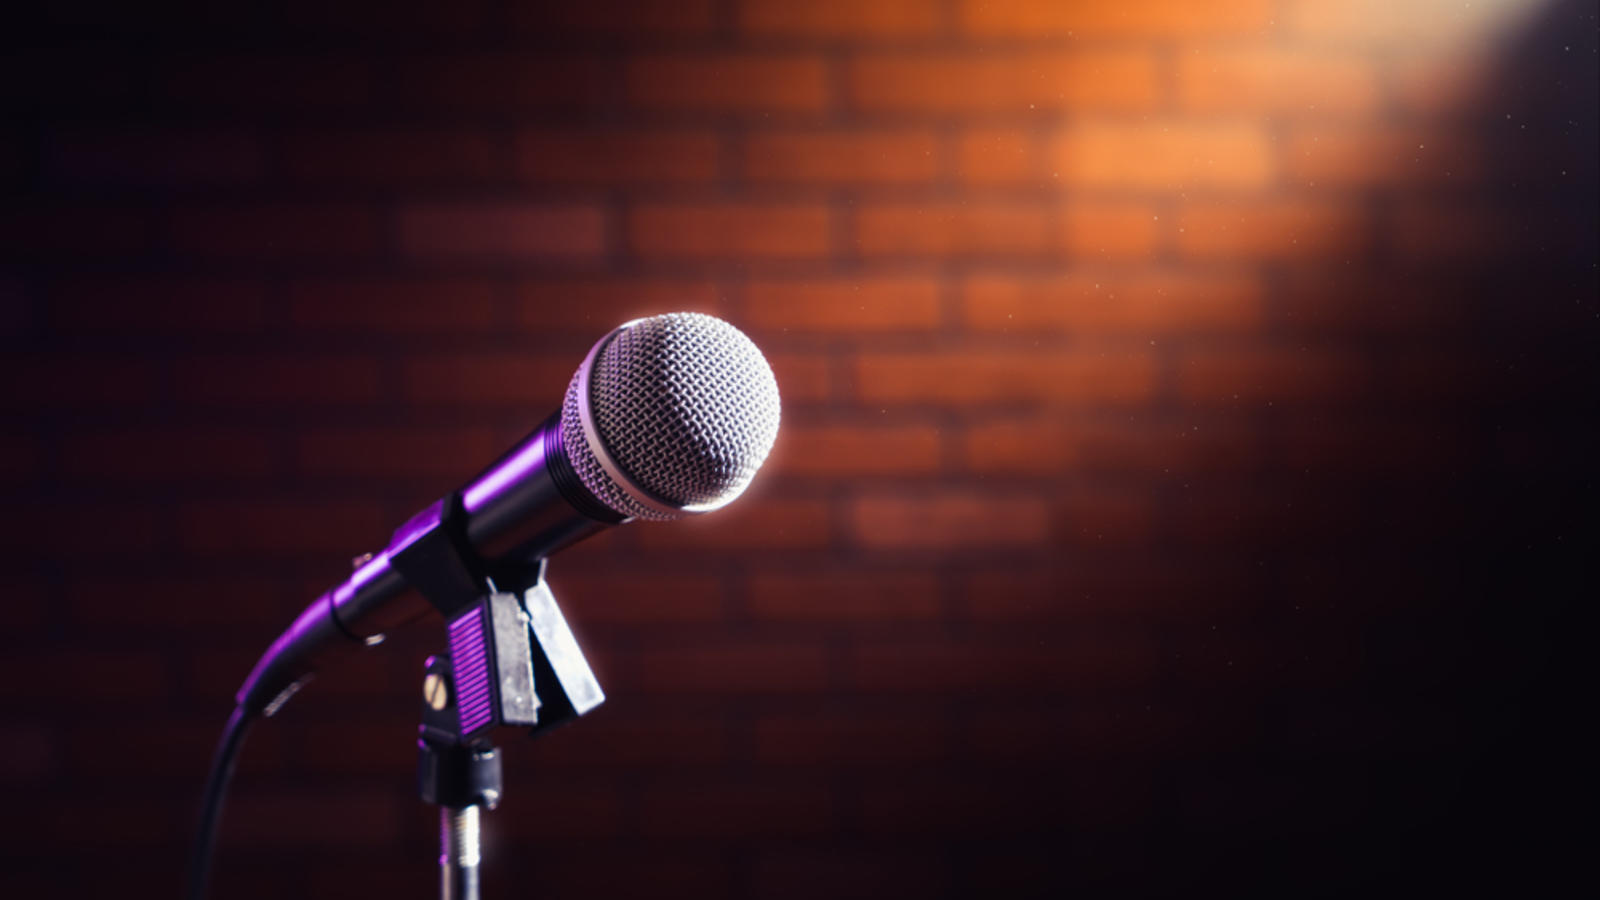 a mic against a red brick wall